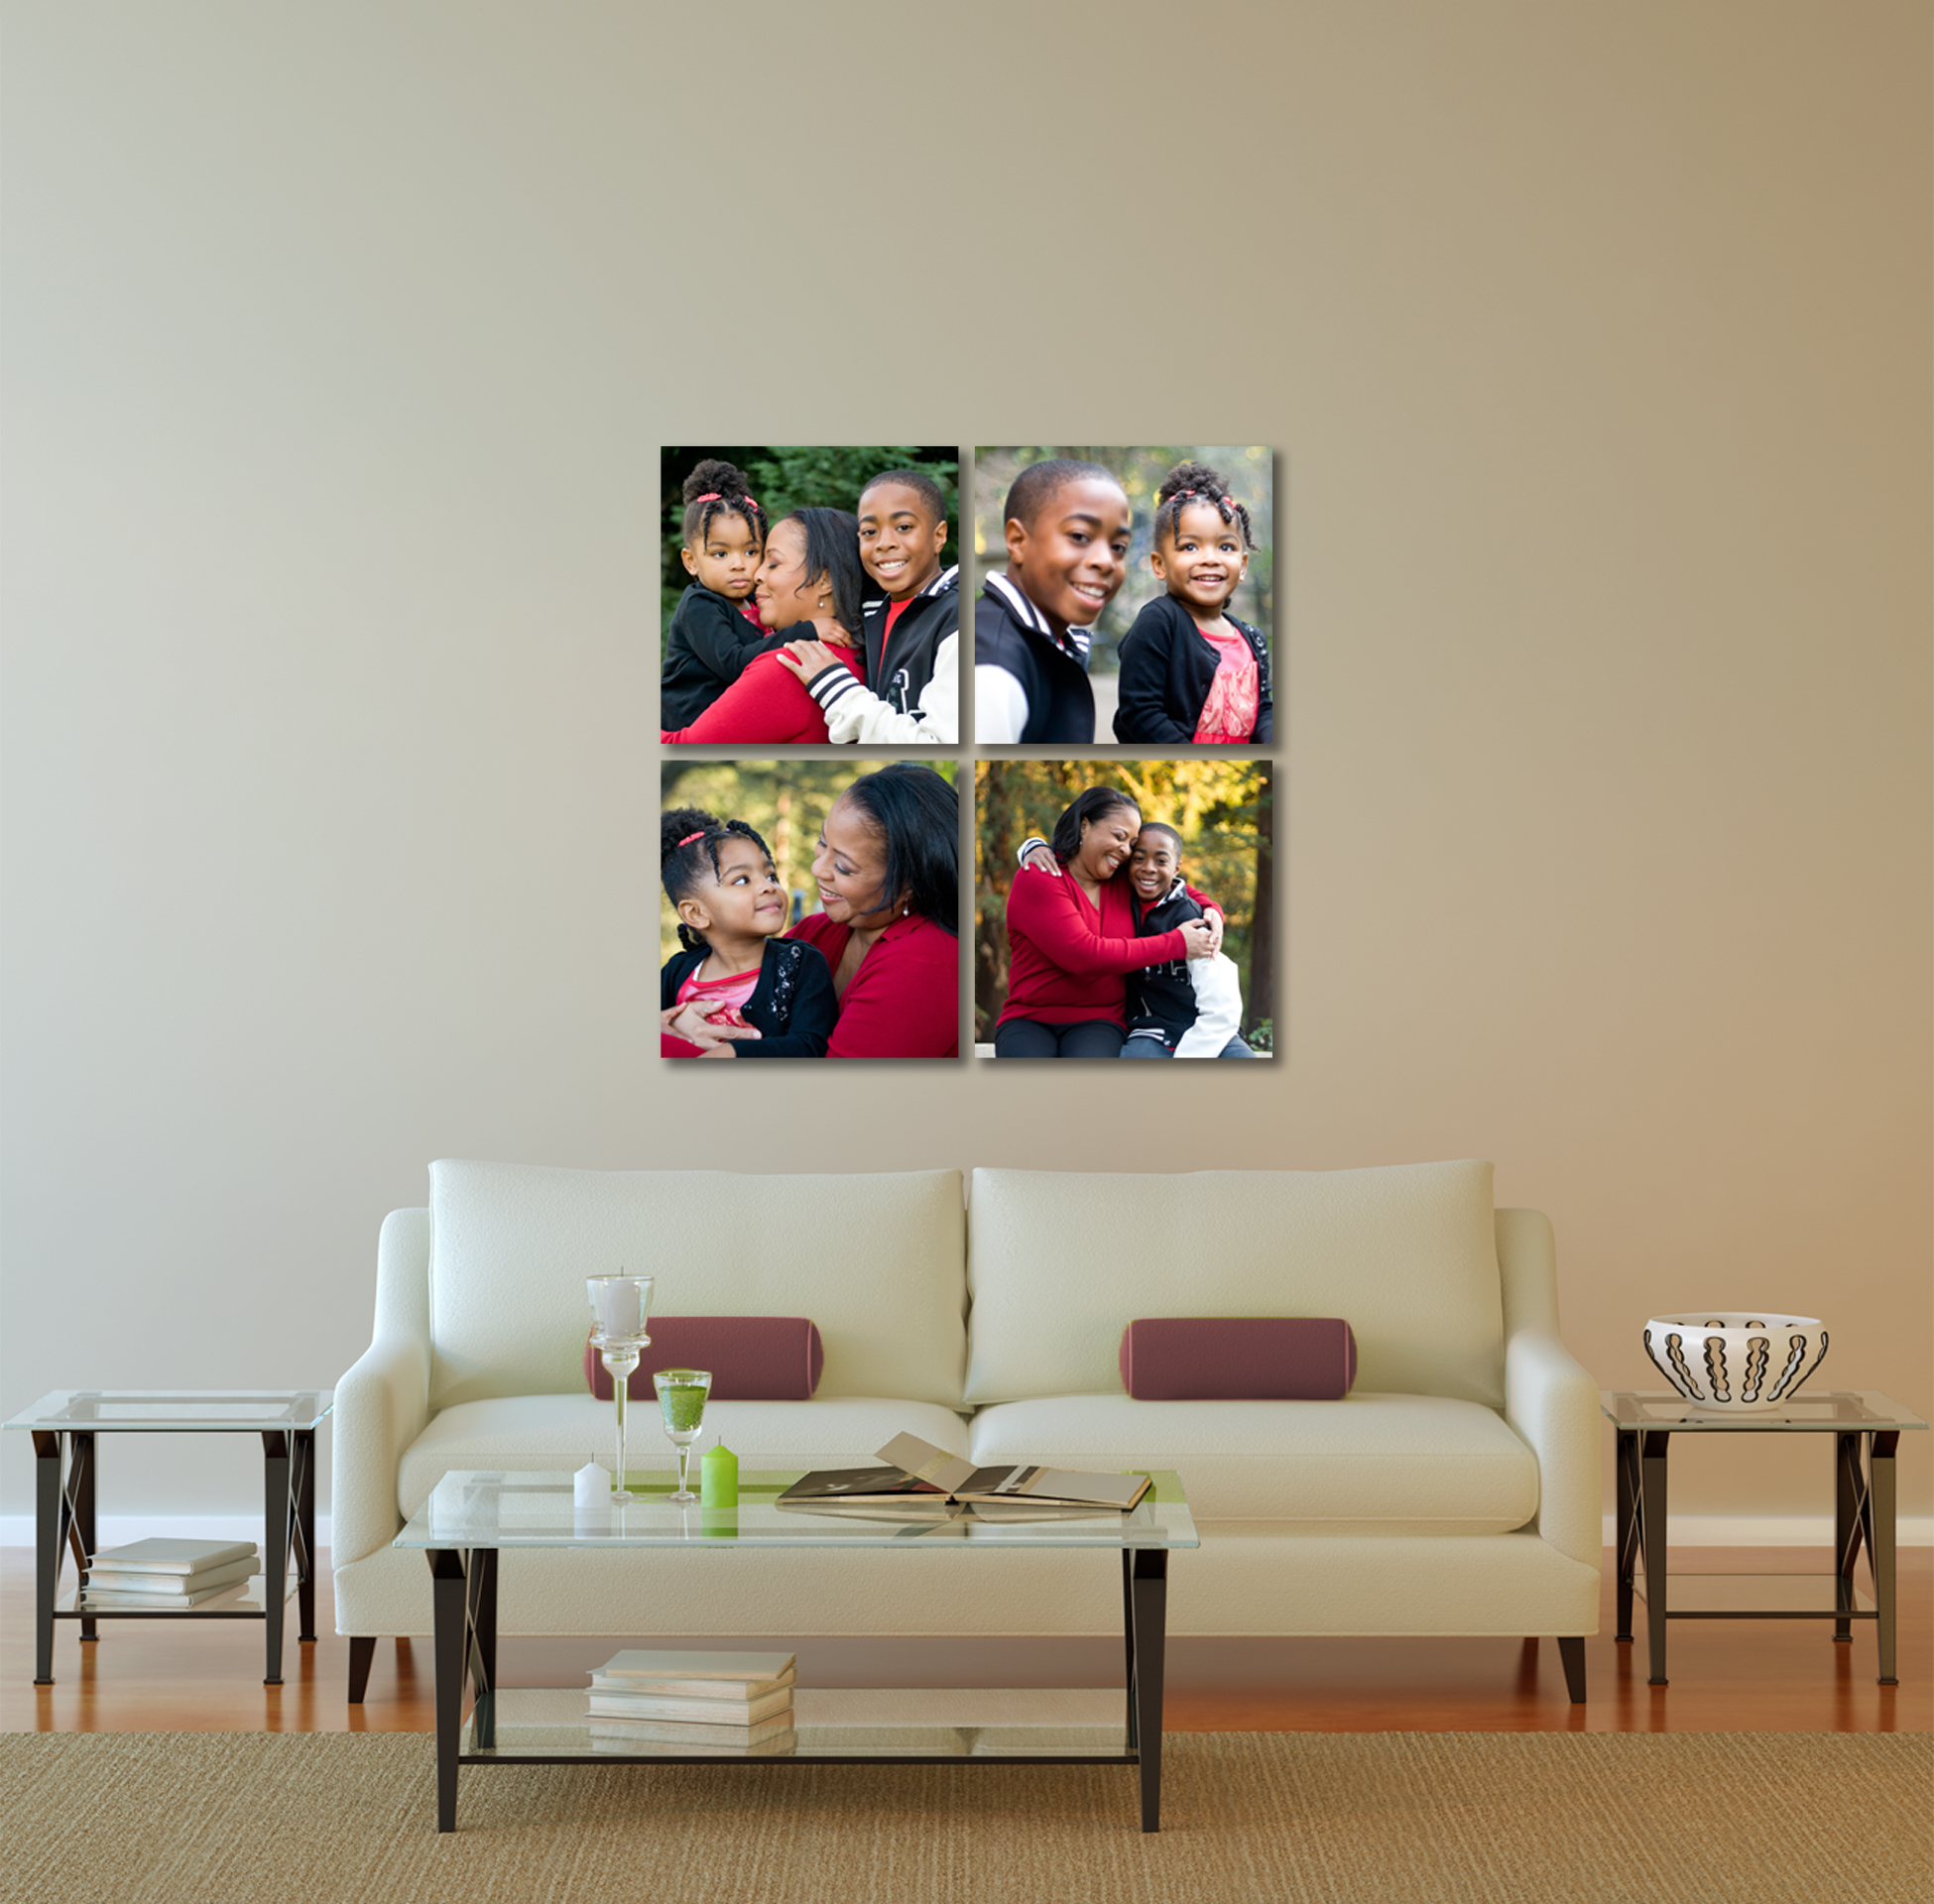 New custom photography products who is nicka smith Canvas prints for living room